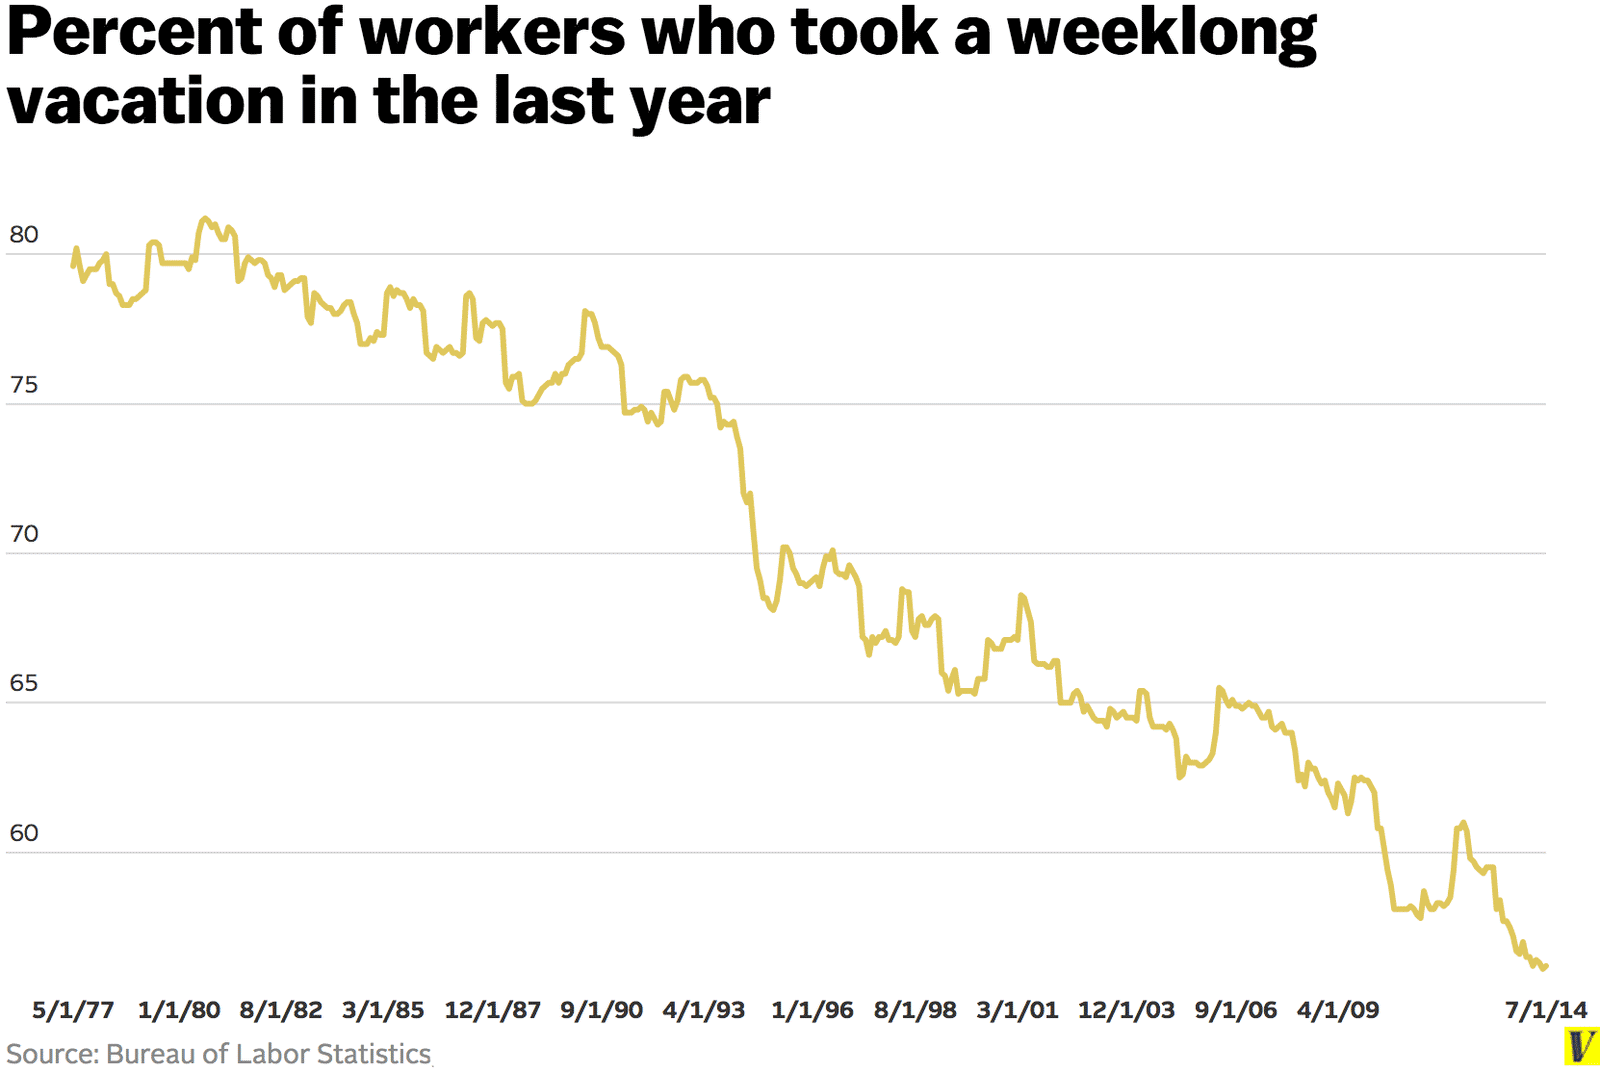 Percent of Workers Who Took a Weeklong Vacation in the Last Year